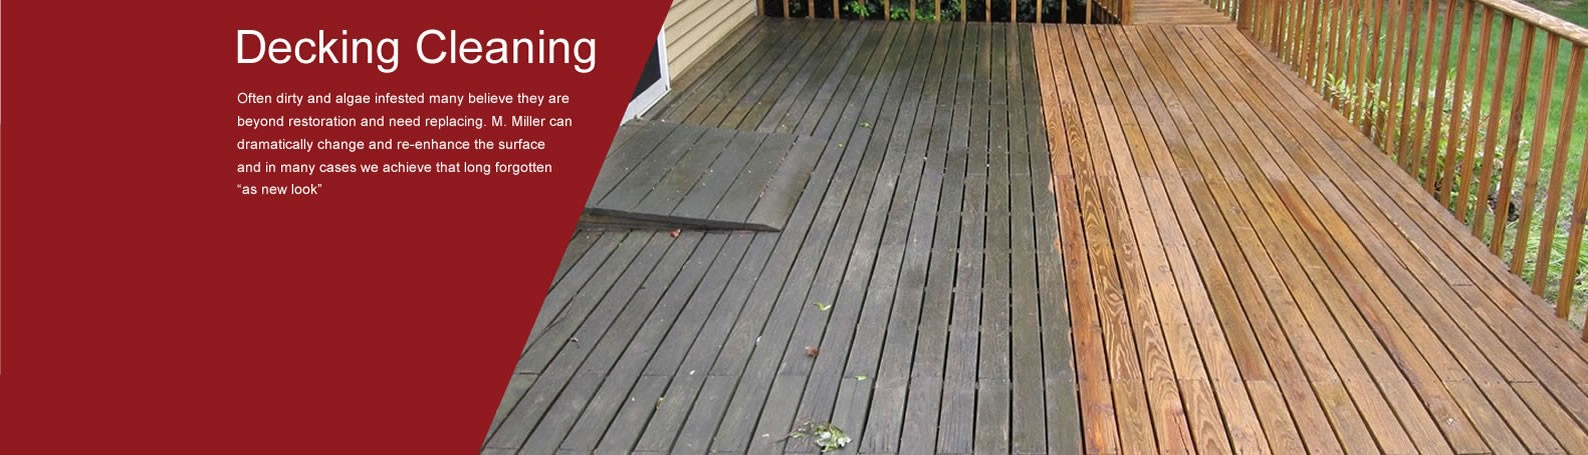 Decking Cleaning Cumbria